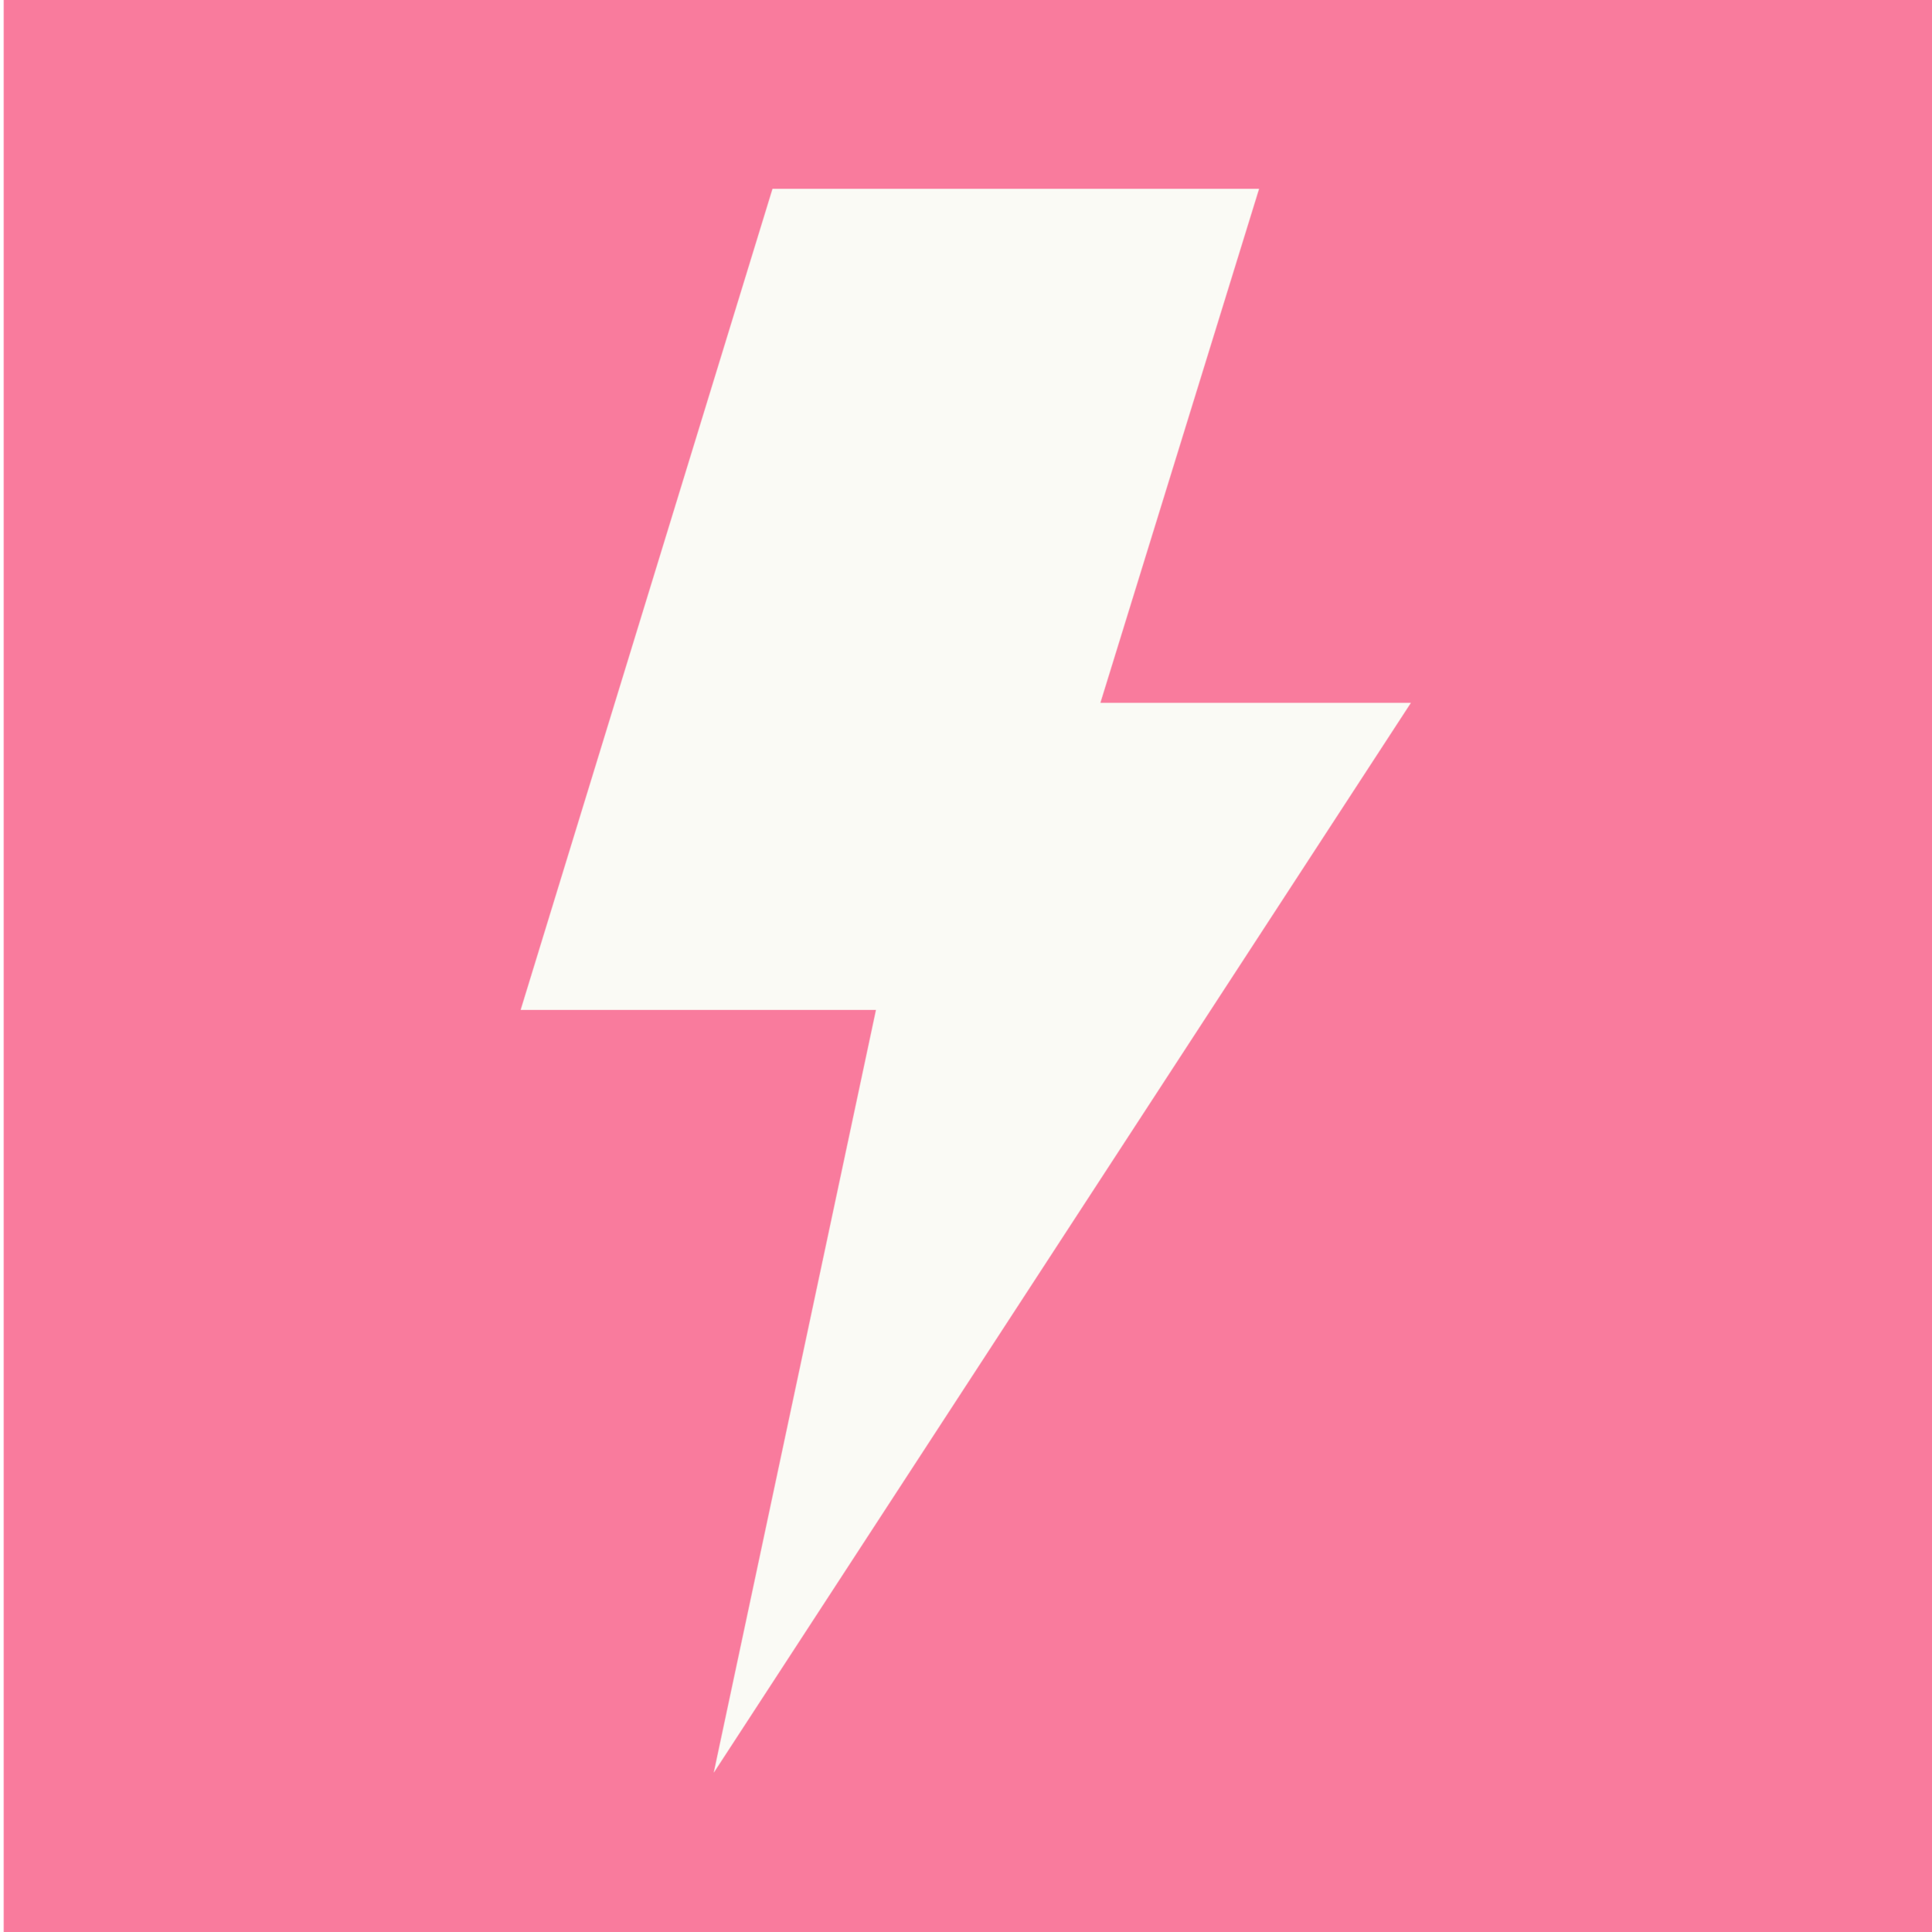 OTL_Square_icons_Pink-01.png